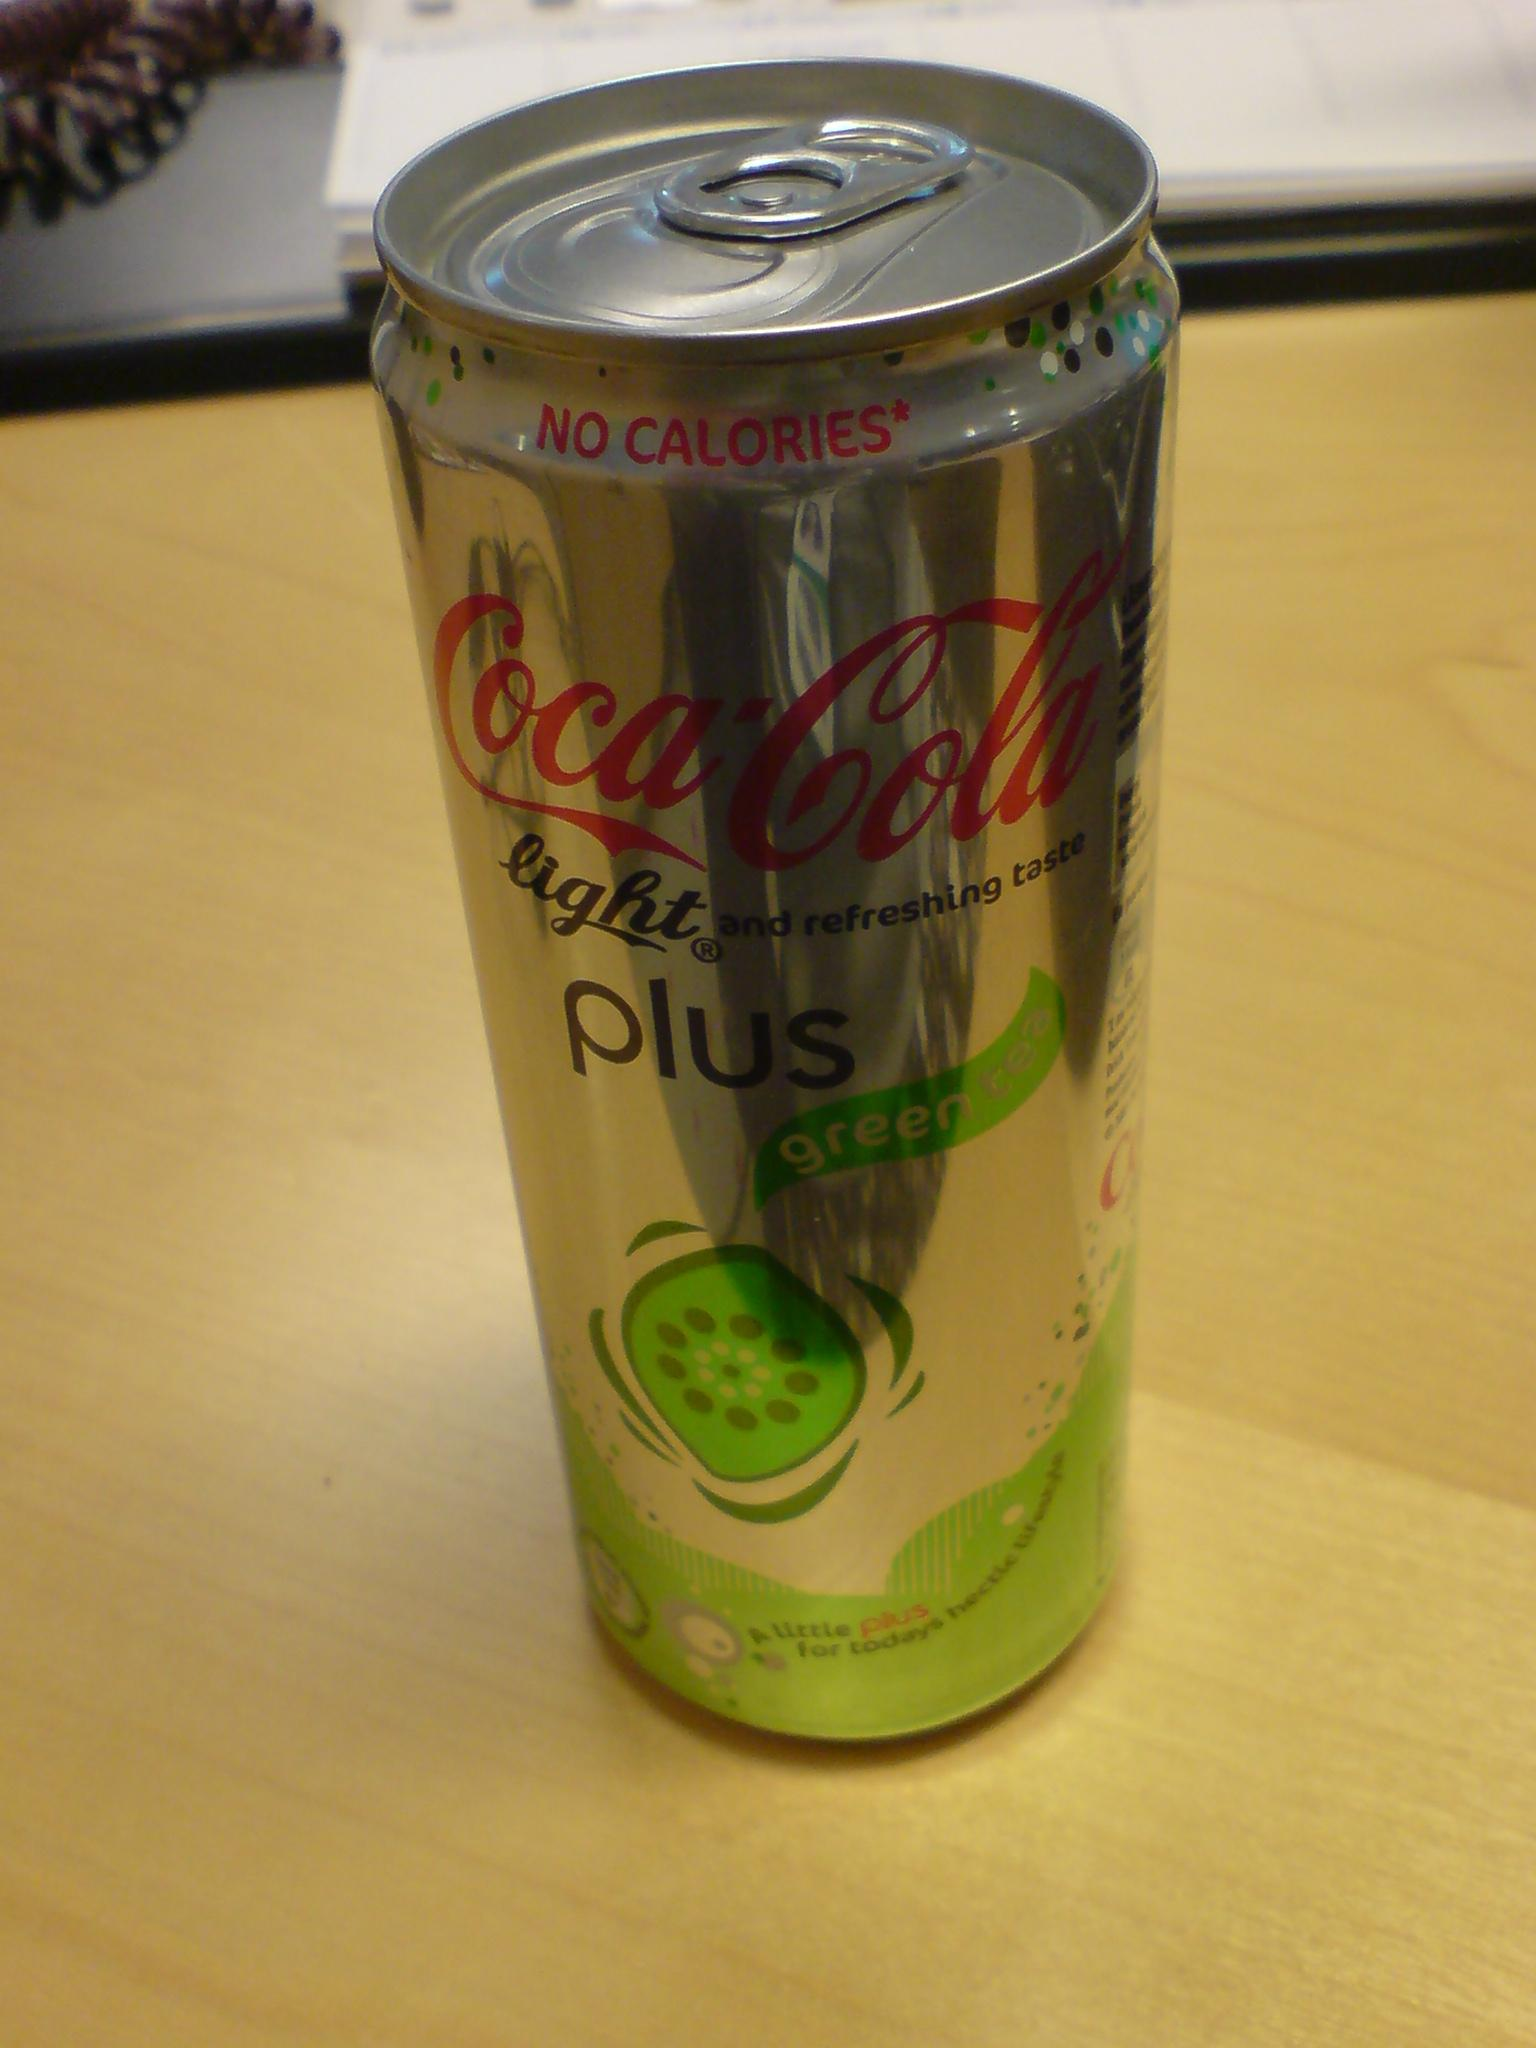 Coca Cola Light Plus Green Tea